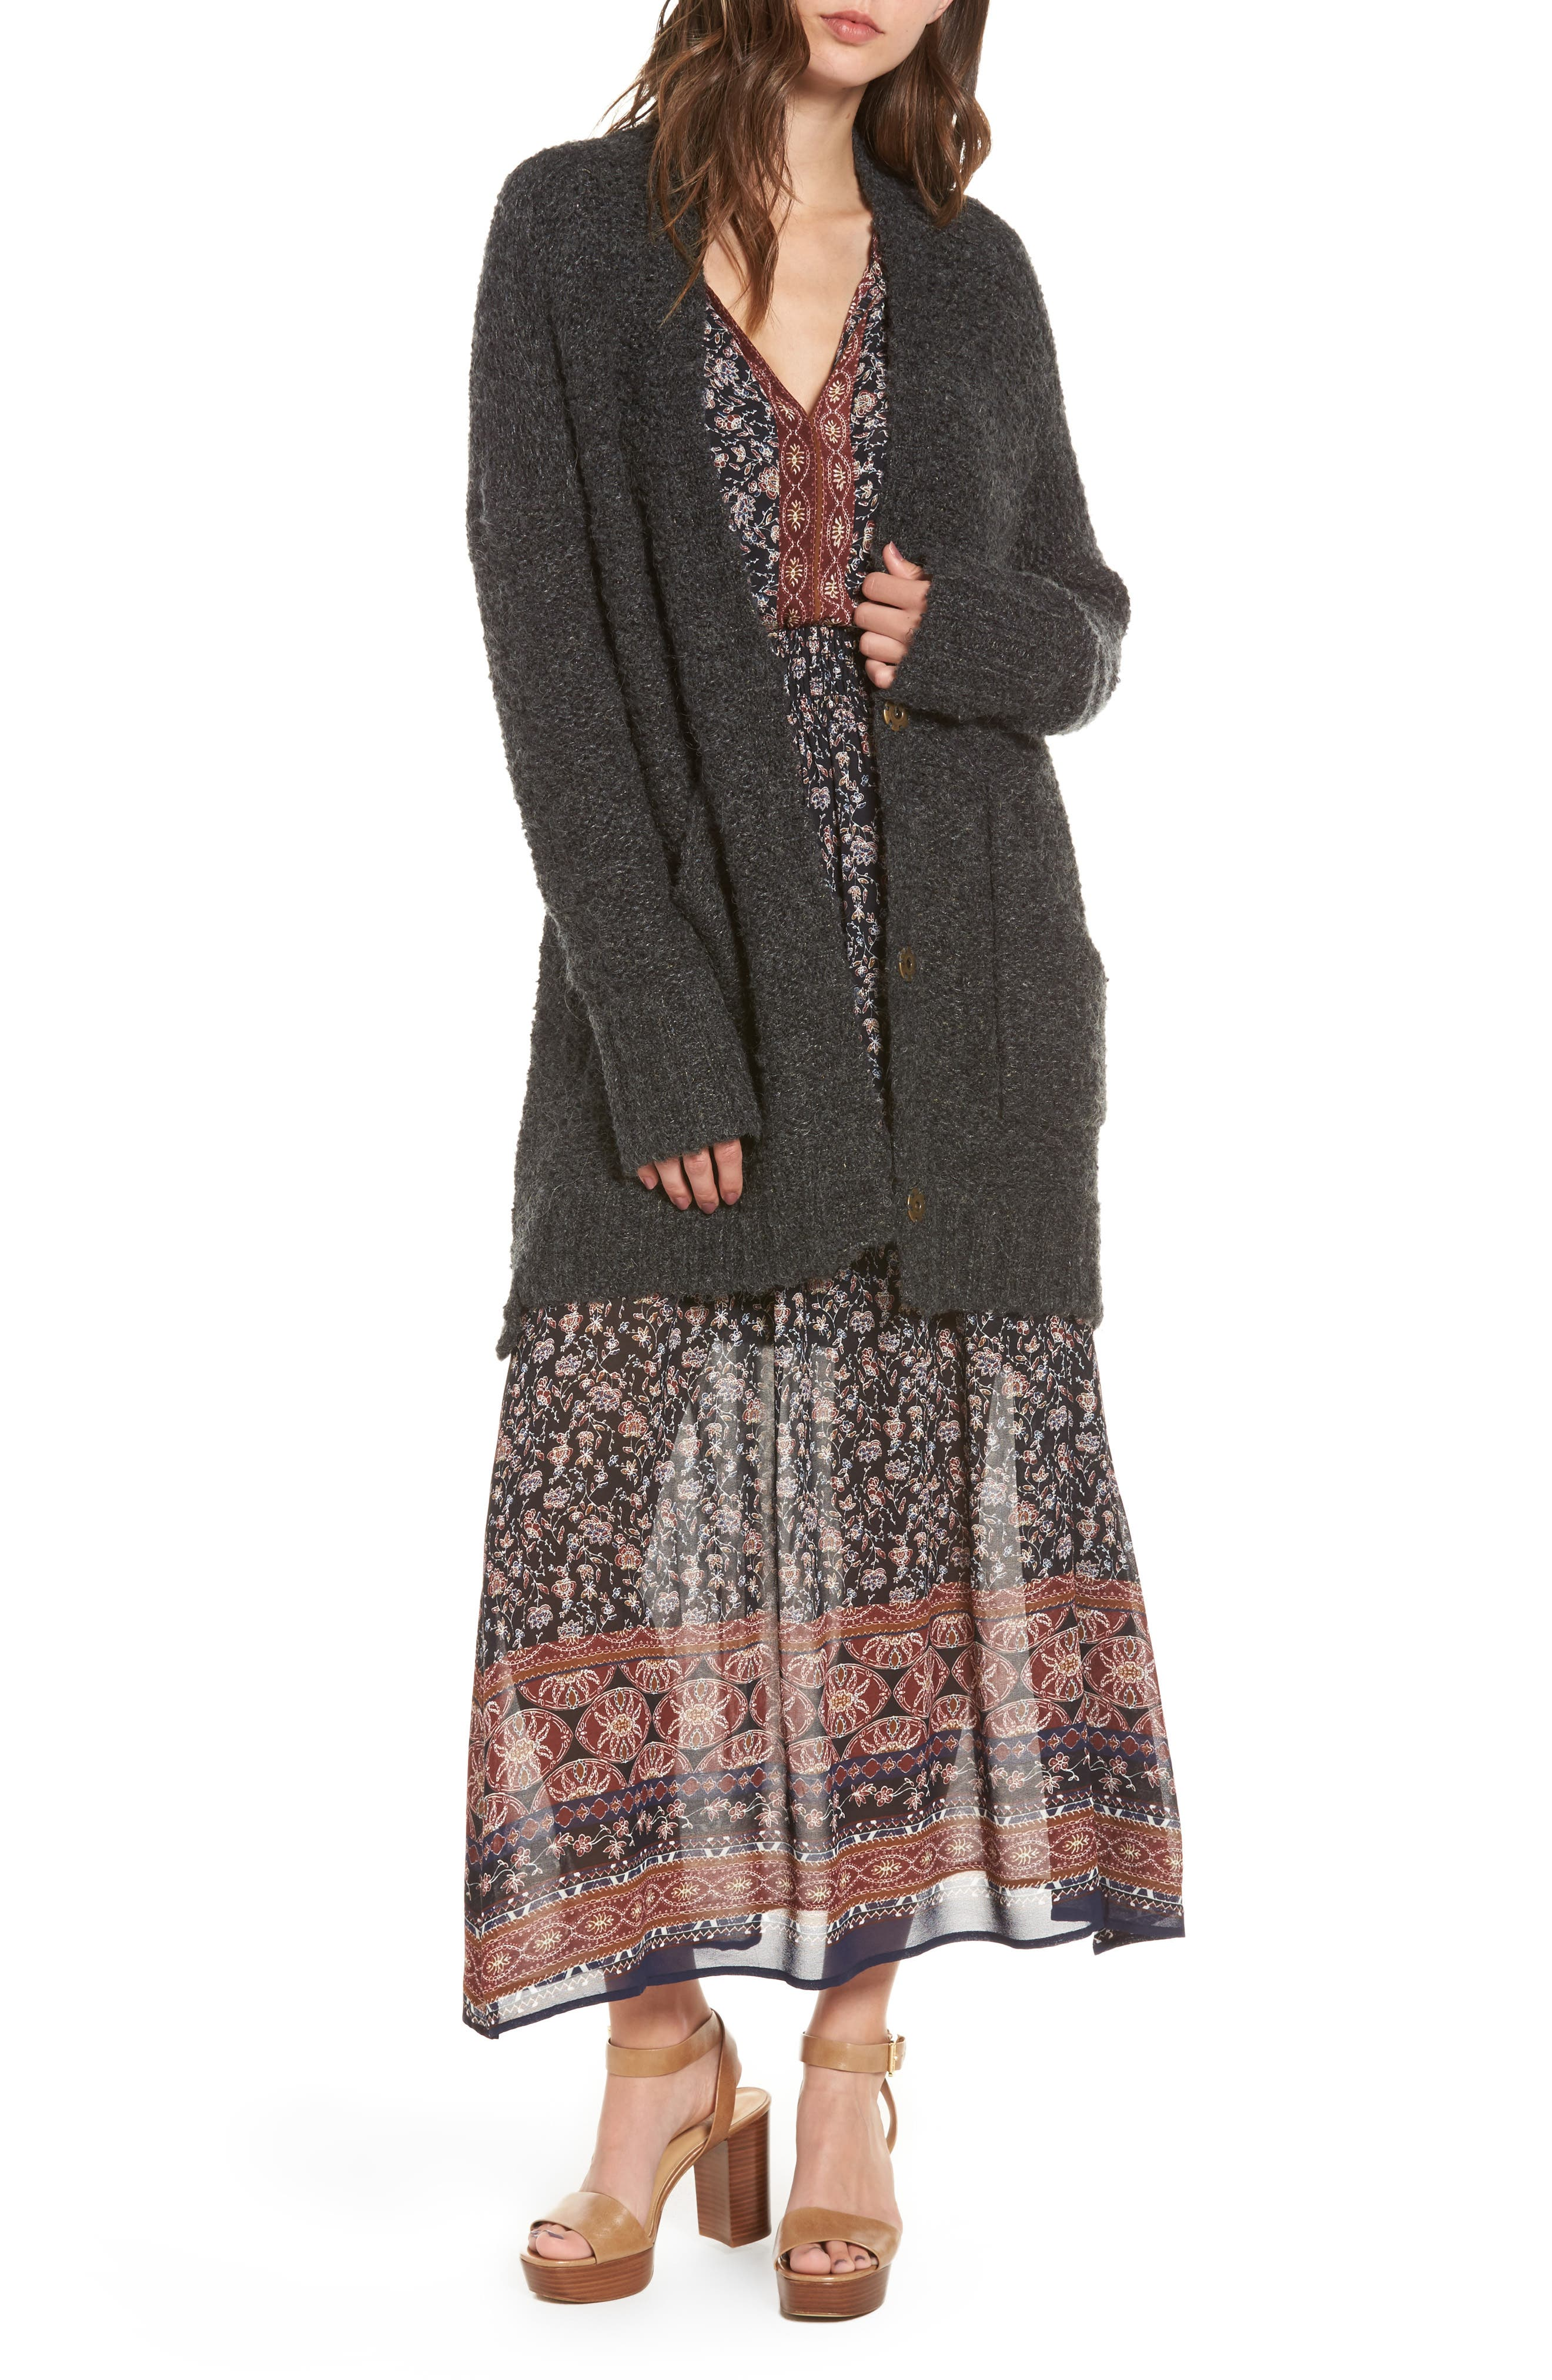 Alternate Image 1 Selected - ASTR the Label Fallon Cardigan